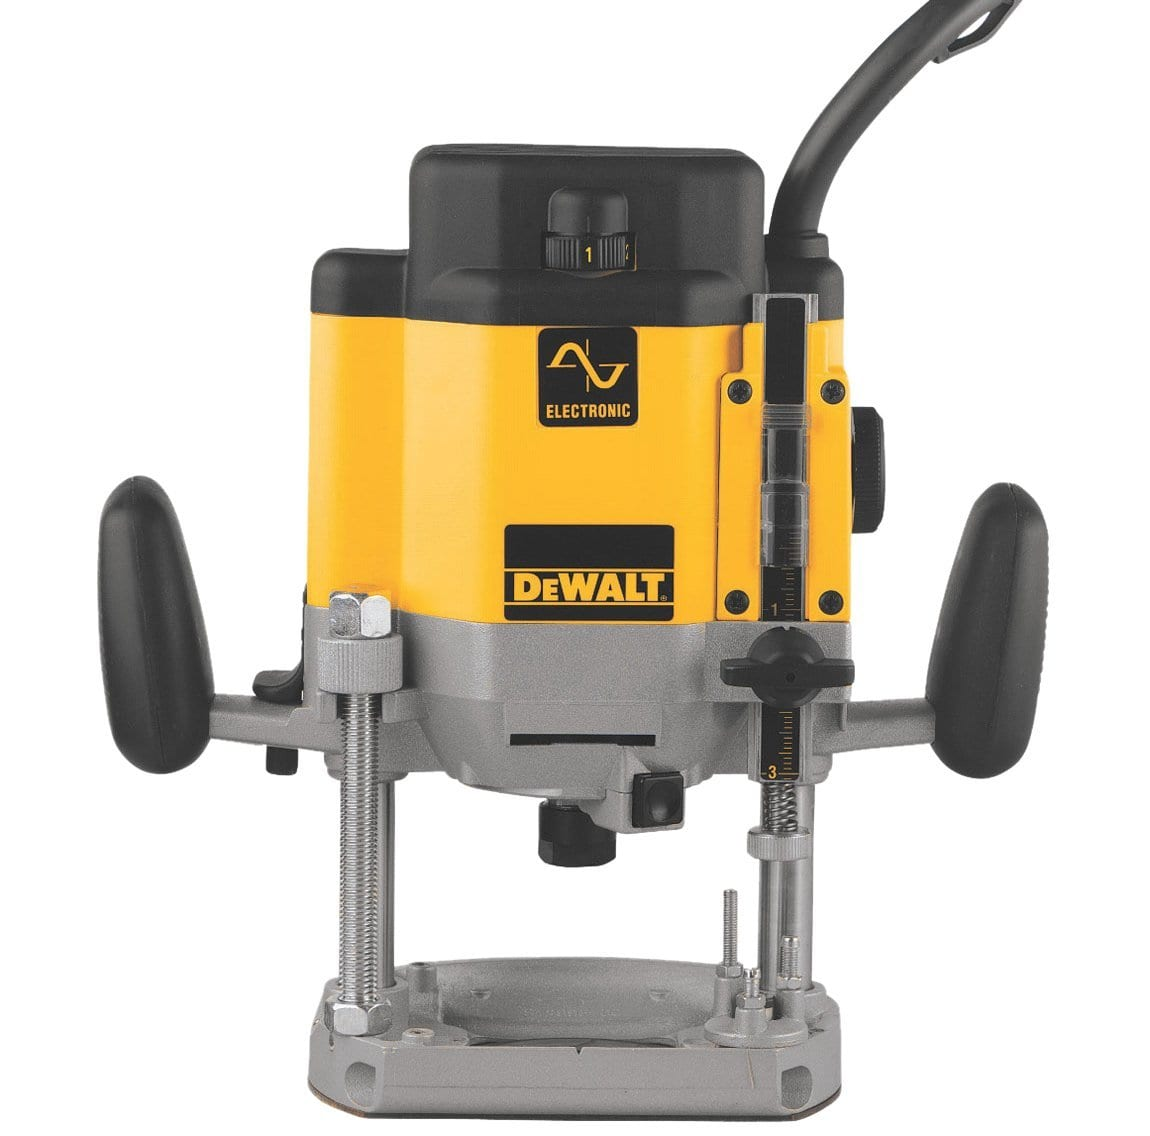 Dewalt Dw625 3 Horsepower Variable Speed Electronic Plunge Router